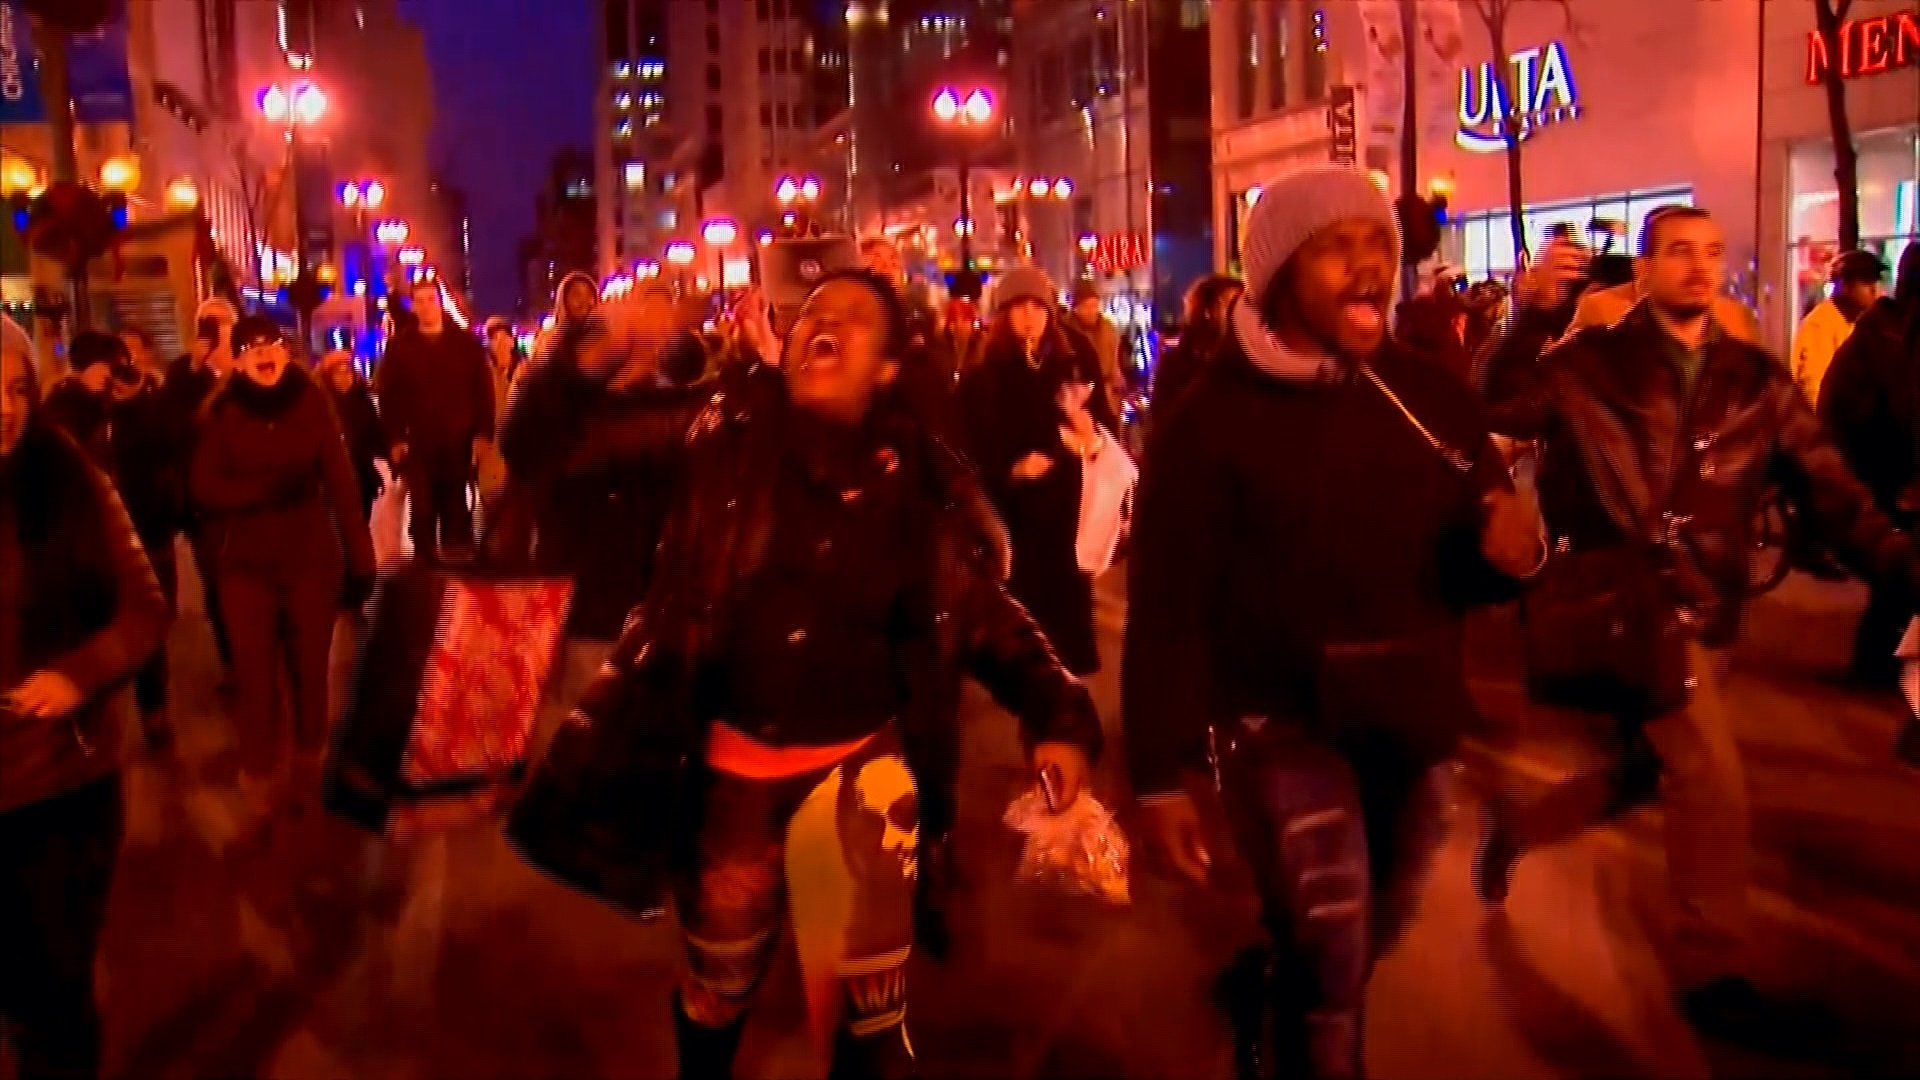 Protesters march in larger numbers in Chicago